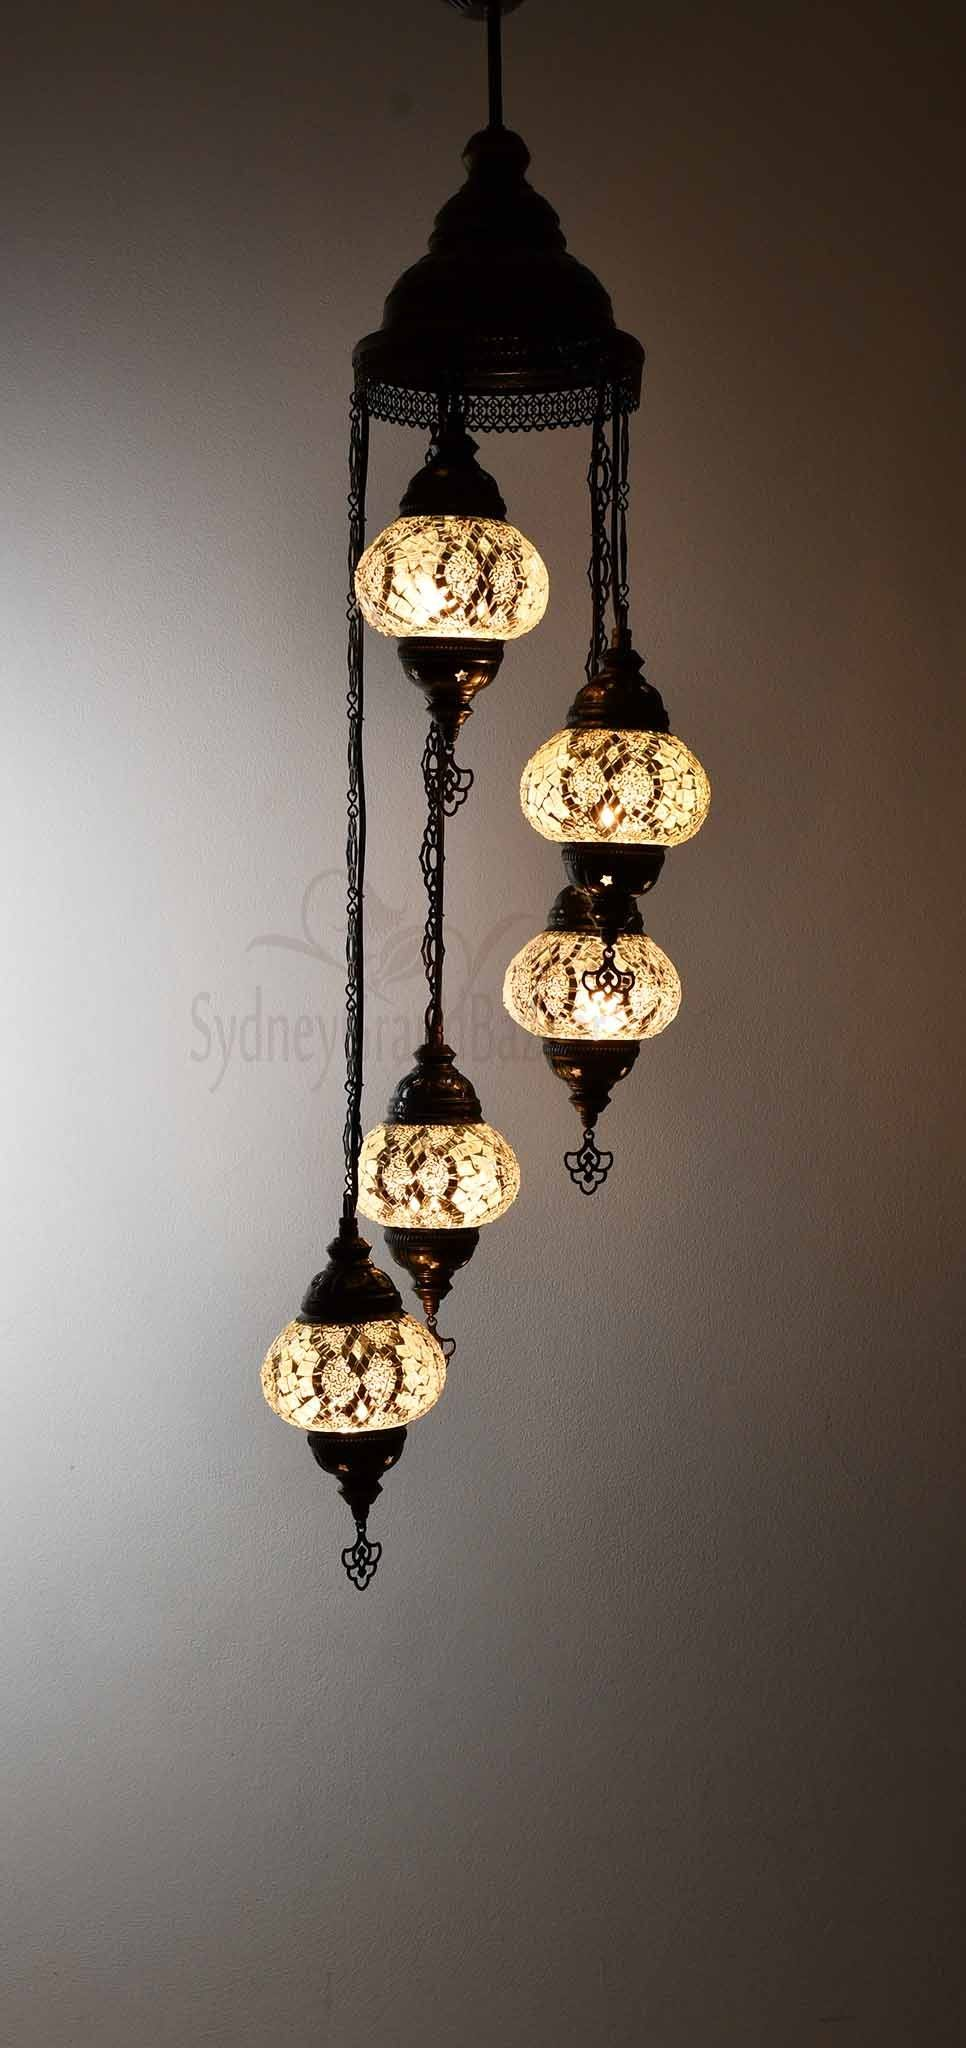 Turkish Mosaic Pendant Light 5 Globes Lighting Sydney Grand Bazaar White